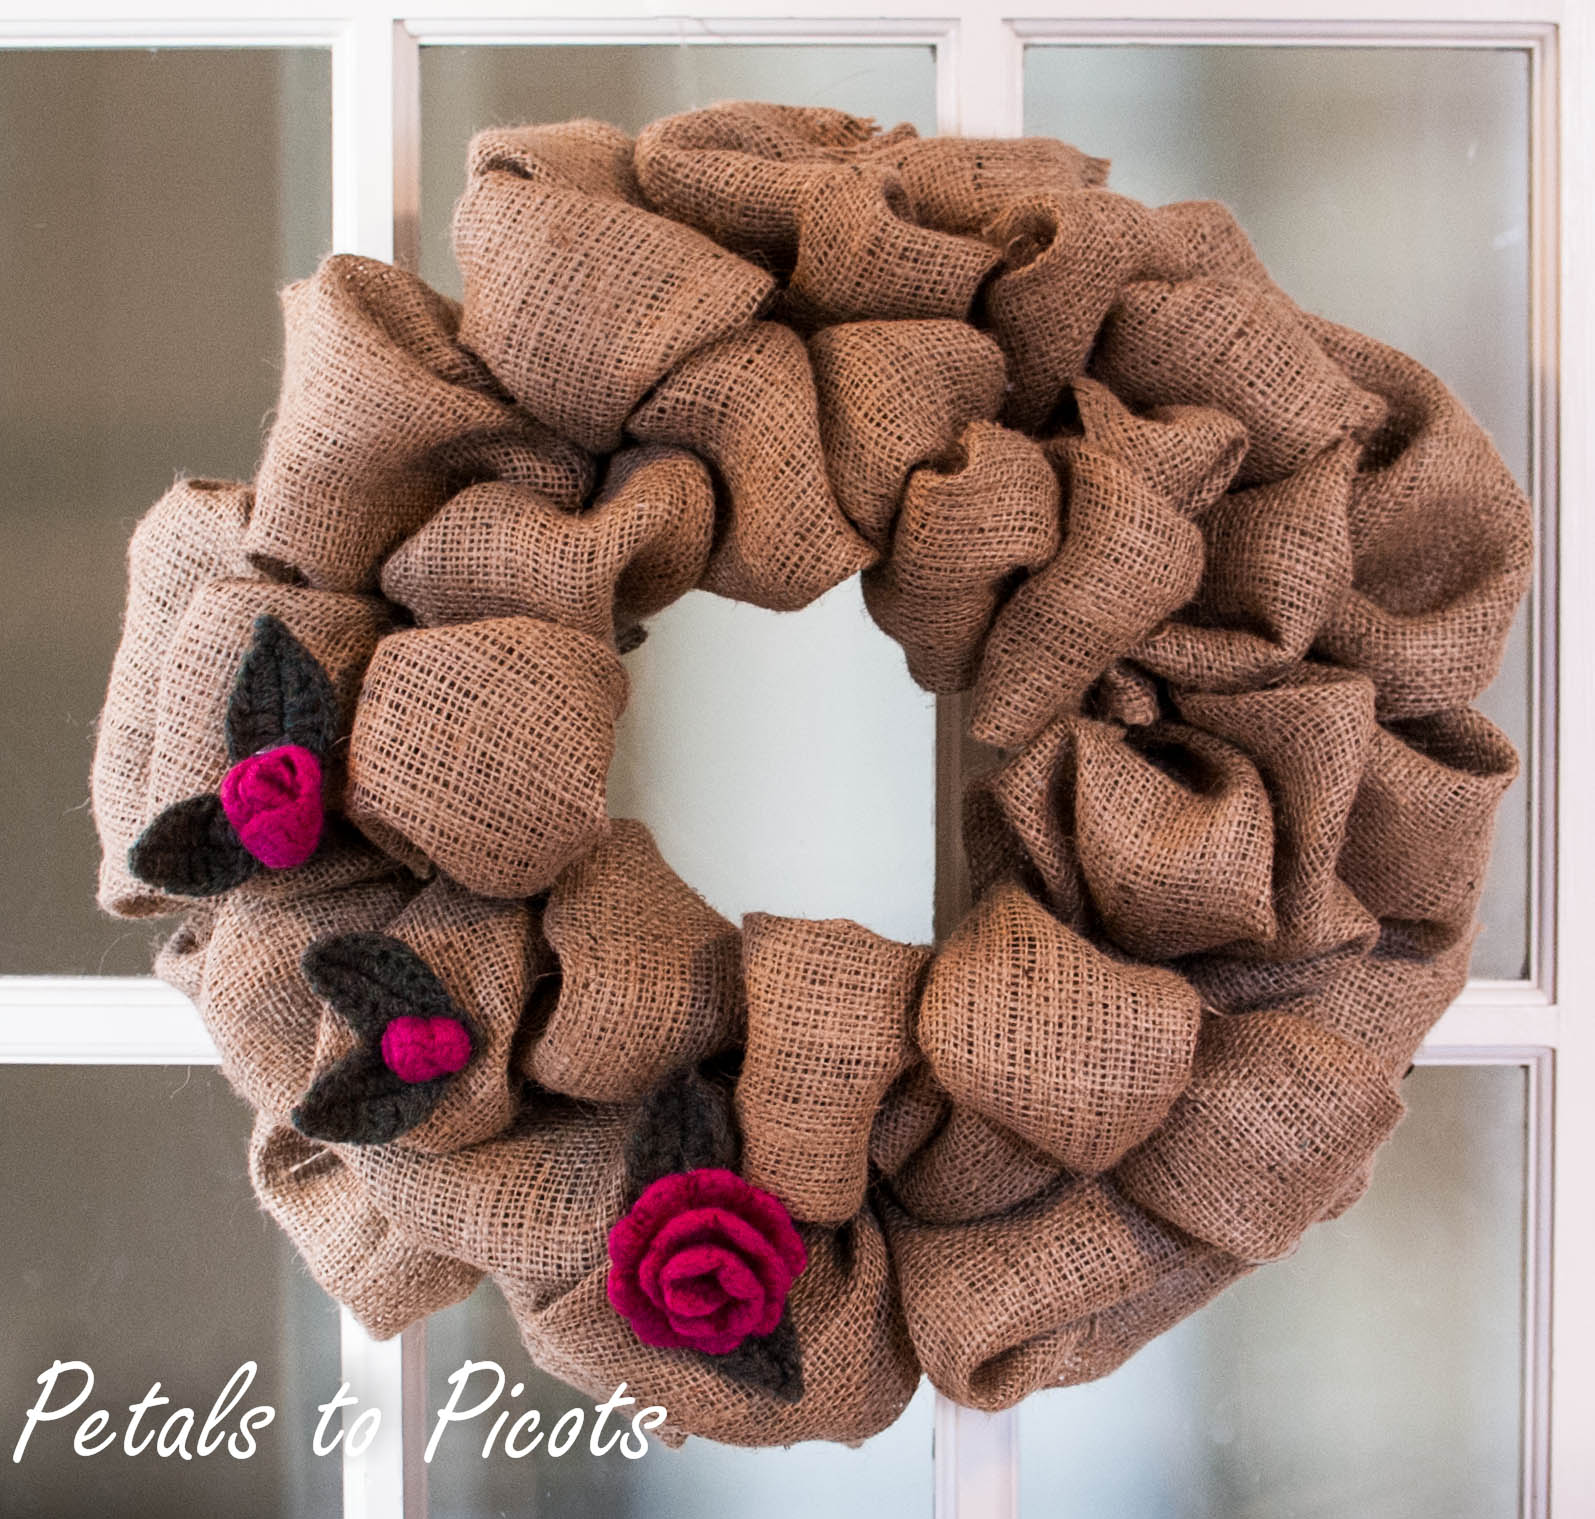 Rosebud And Leaf Pattern To Embellish A Burlap Wreath Petals To Picots